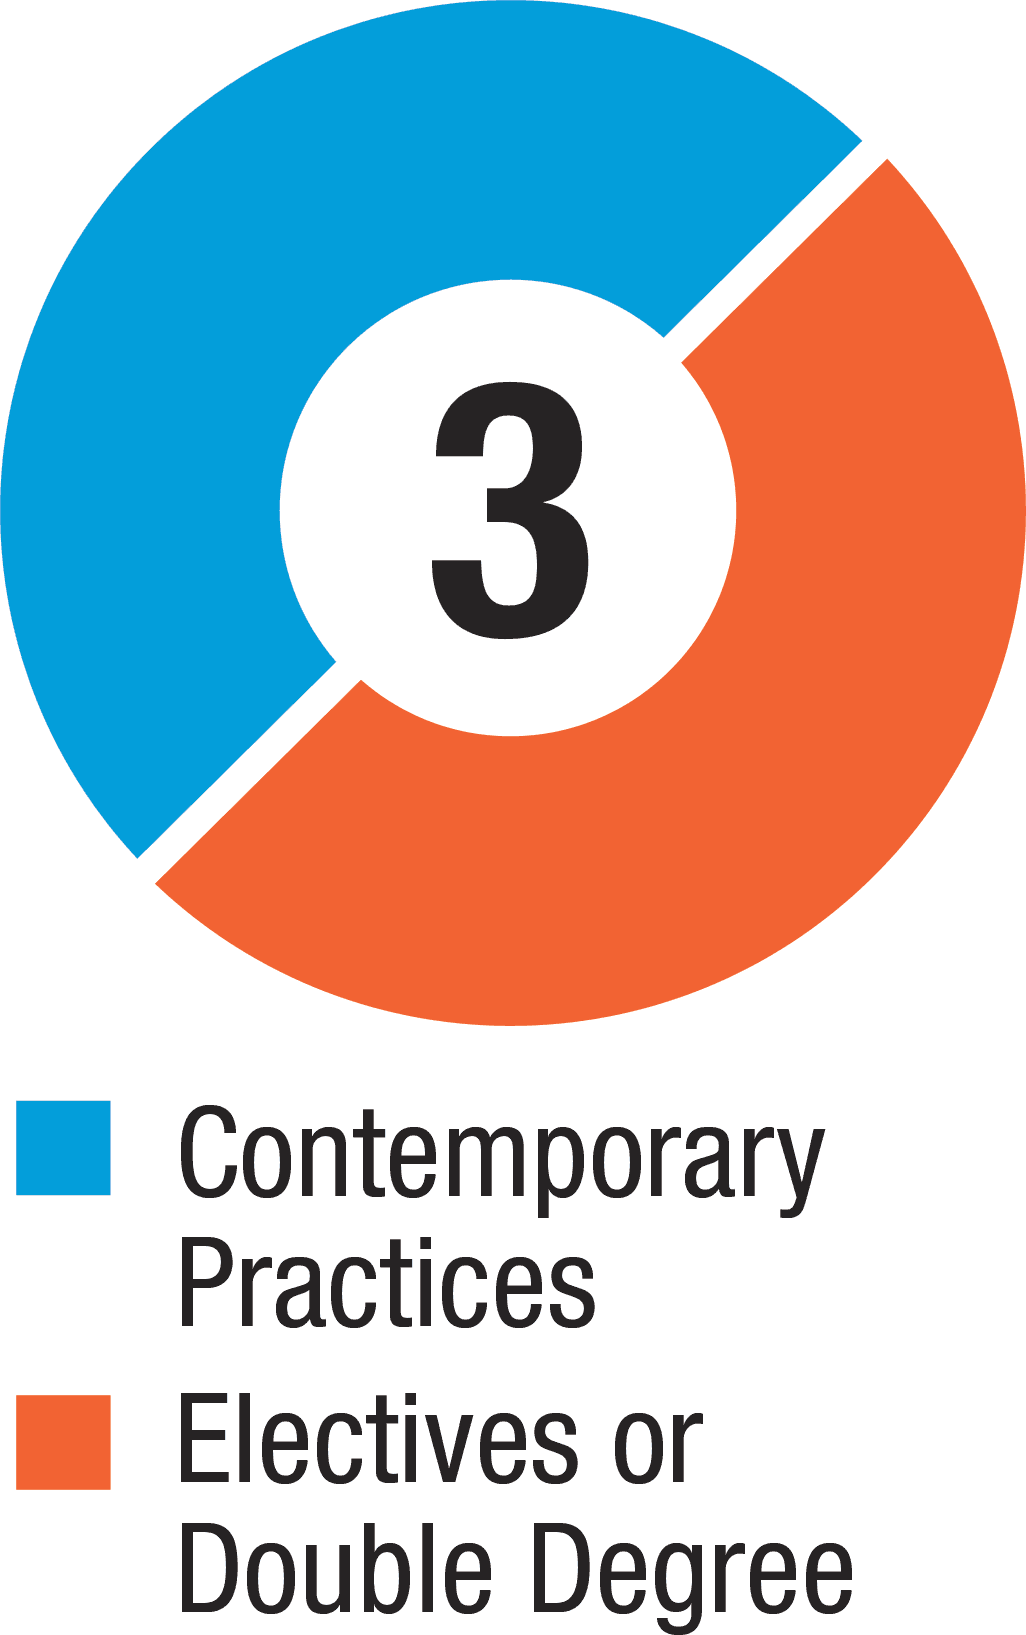 Contemporary Practices: 50%, Electives or Double Degree: 50%